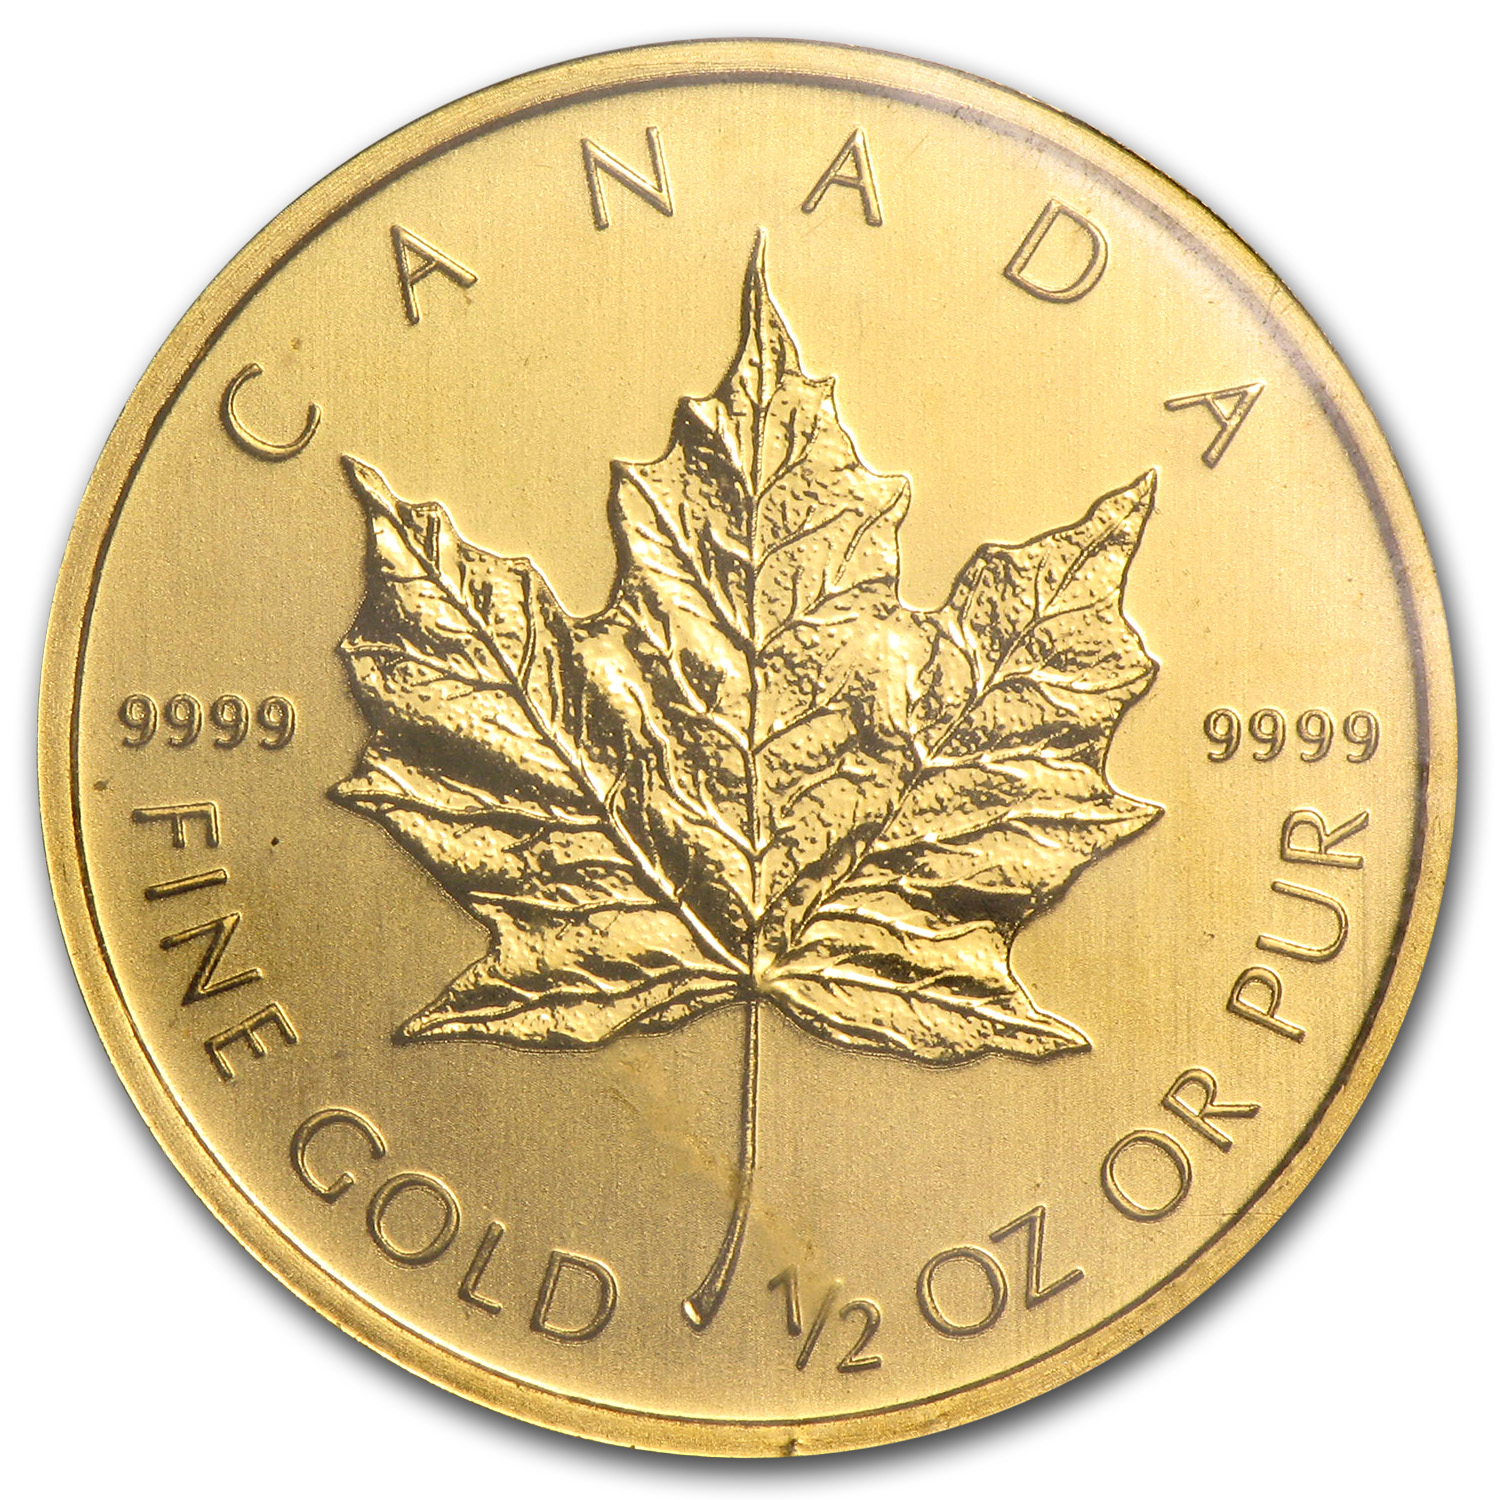 2011 Canada 1/2 oz Gold Maple Leaf BU